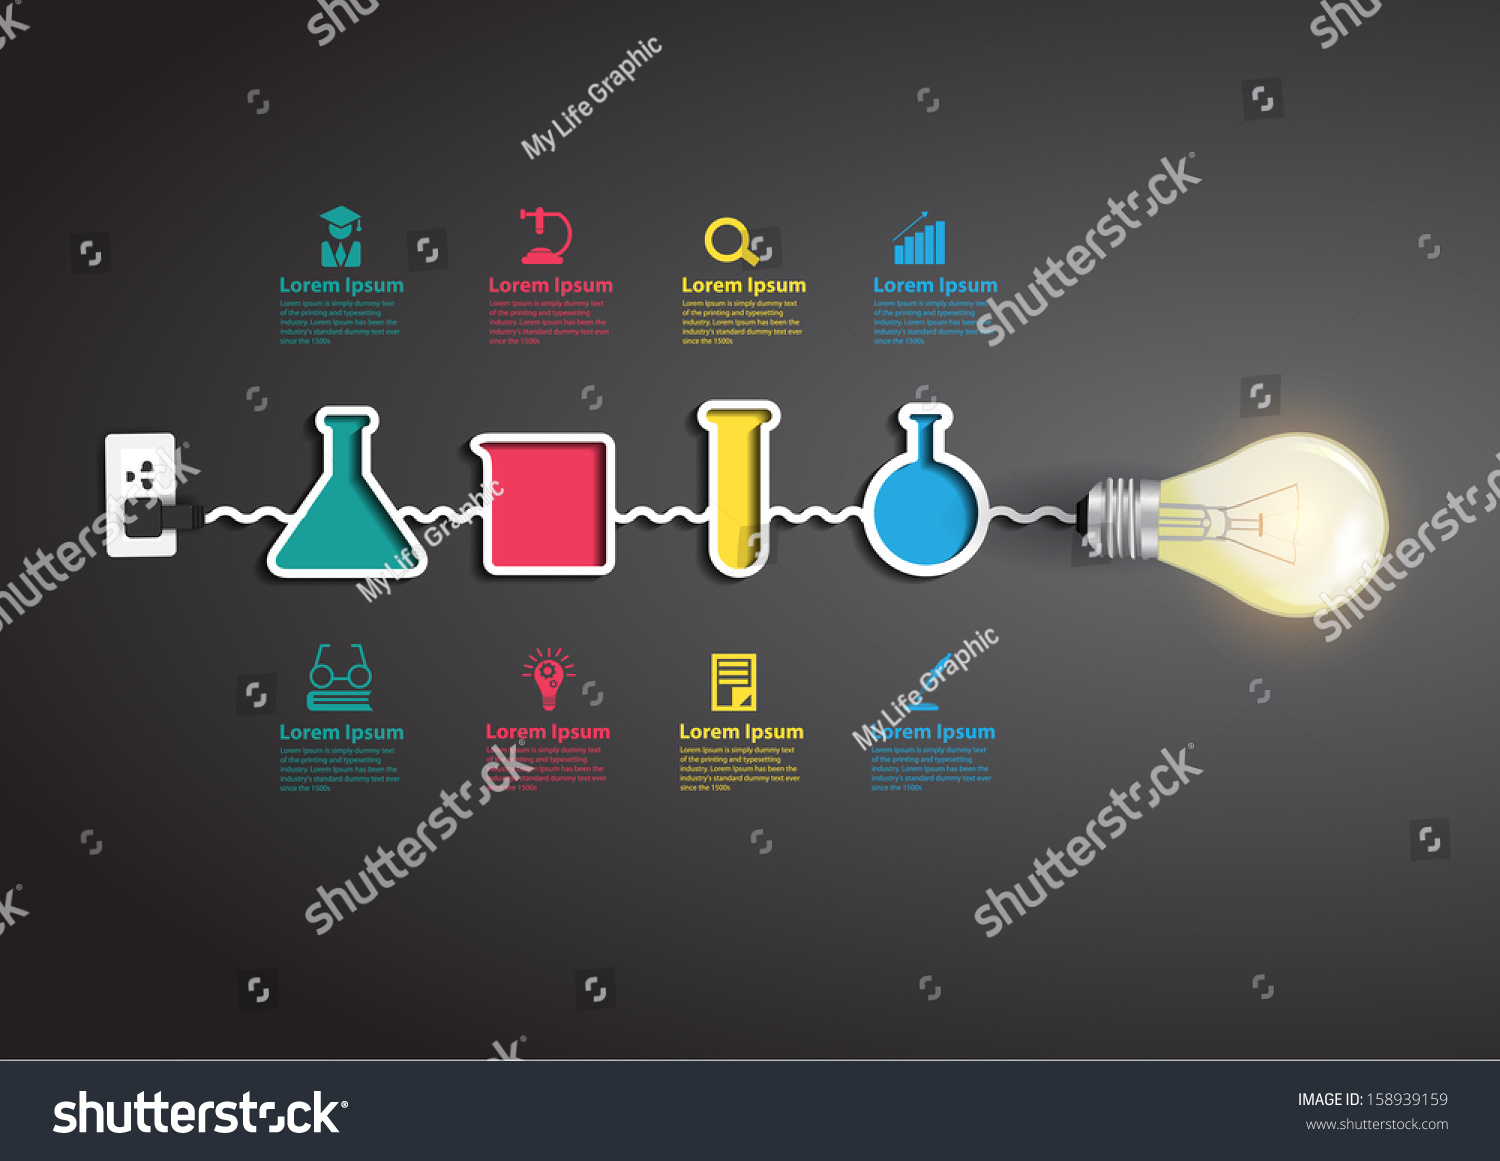 creative light bulb idea chemistry science stock vector  creative light bulb idea chemistry and science icon education concept vector illustration modern design